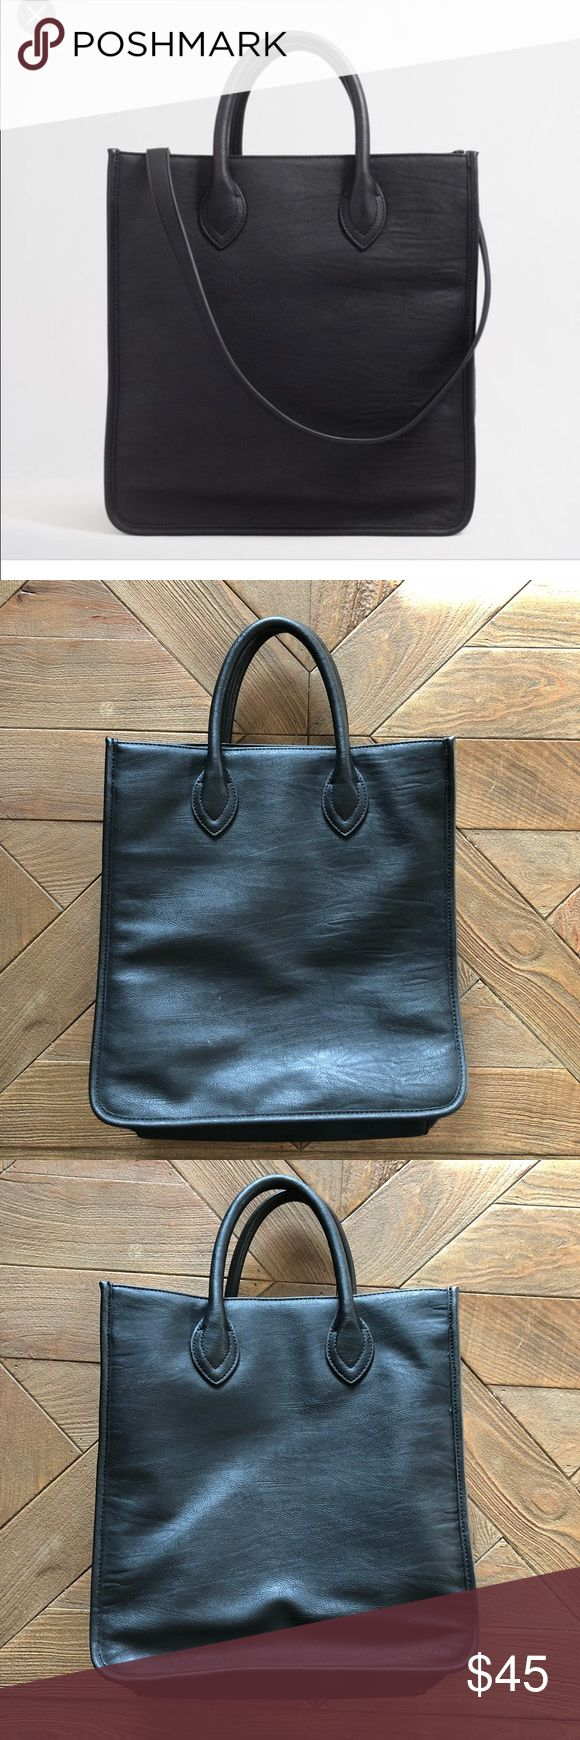 """J Crew Factory Black Leather tote J Crew Factory Black Leather tote, two handles and a crossbody strap. Great work bag! Only used a couple times. Great condition.   PRODUCT DETAILS 12 1/2""""H x 13""""W x 5 1/2""""D. 9"""" handle drop. Import. J. Crew Factory Bags Totes"""